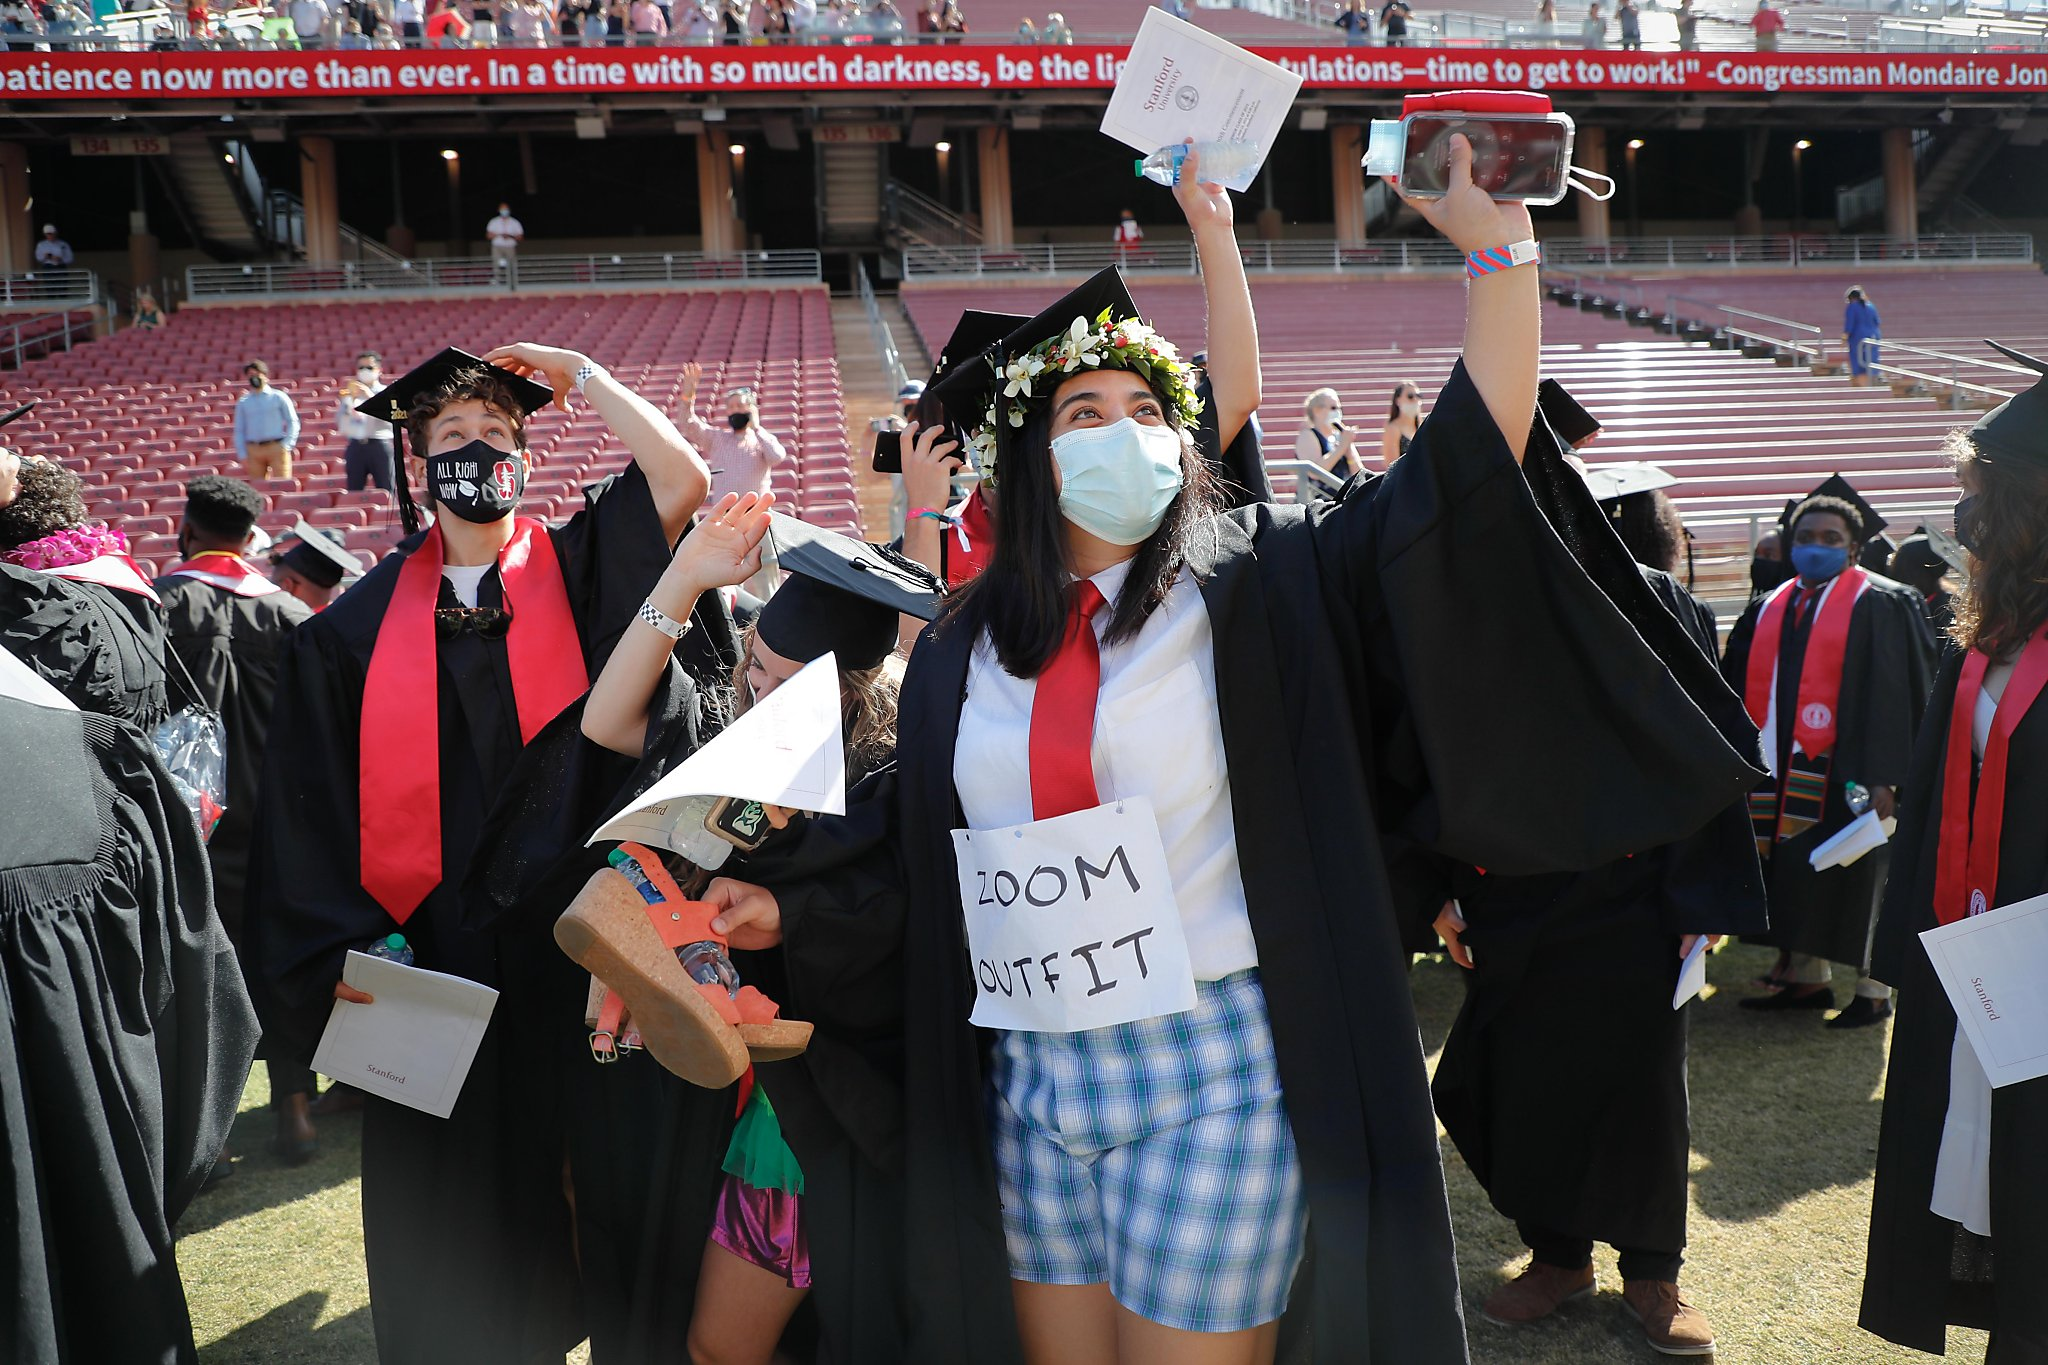 Stanford holds Bay Area's first full in-person college commencement since pandemic began